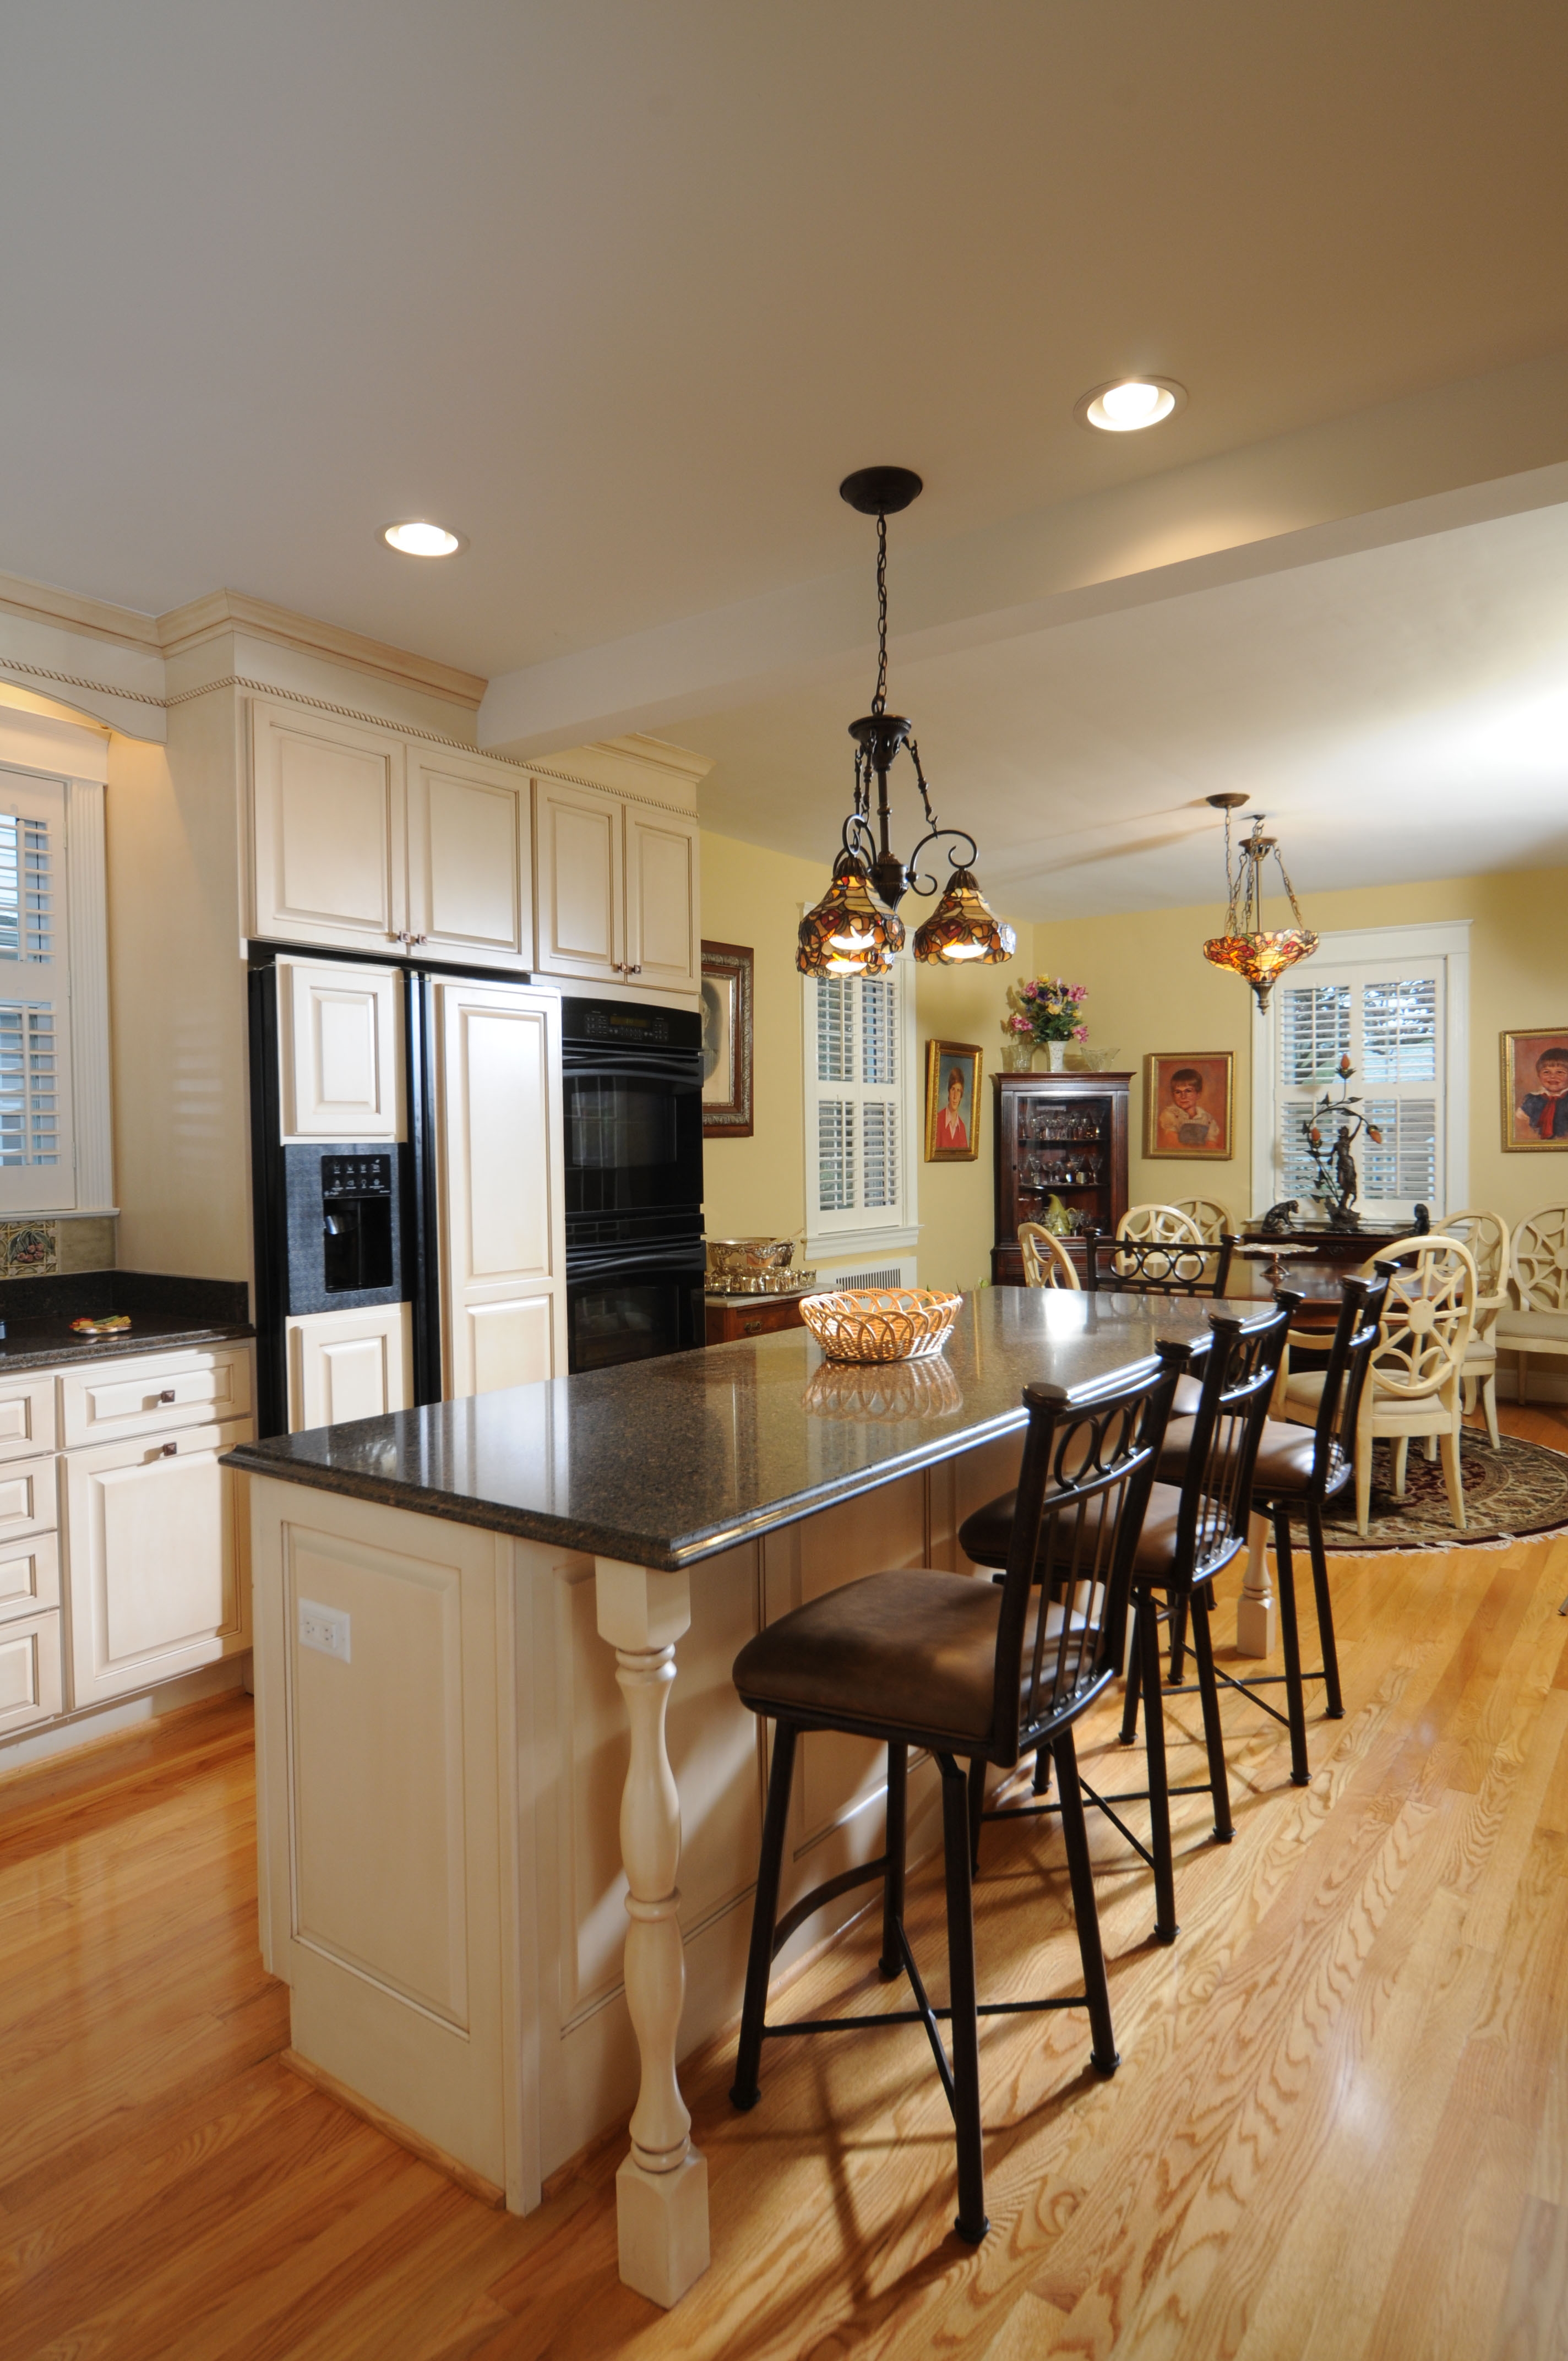 kitchen bathroom remodel kitchen and bathroom remodeling Kitchen Projects